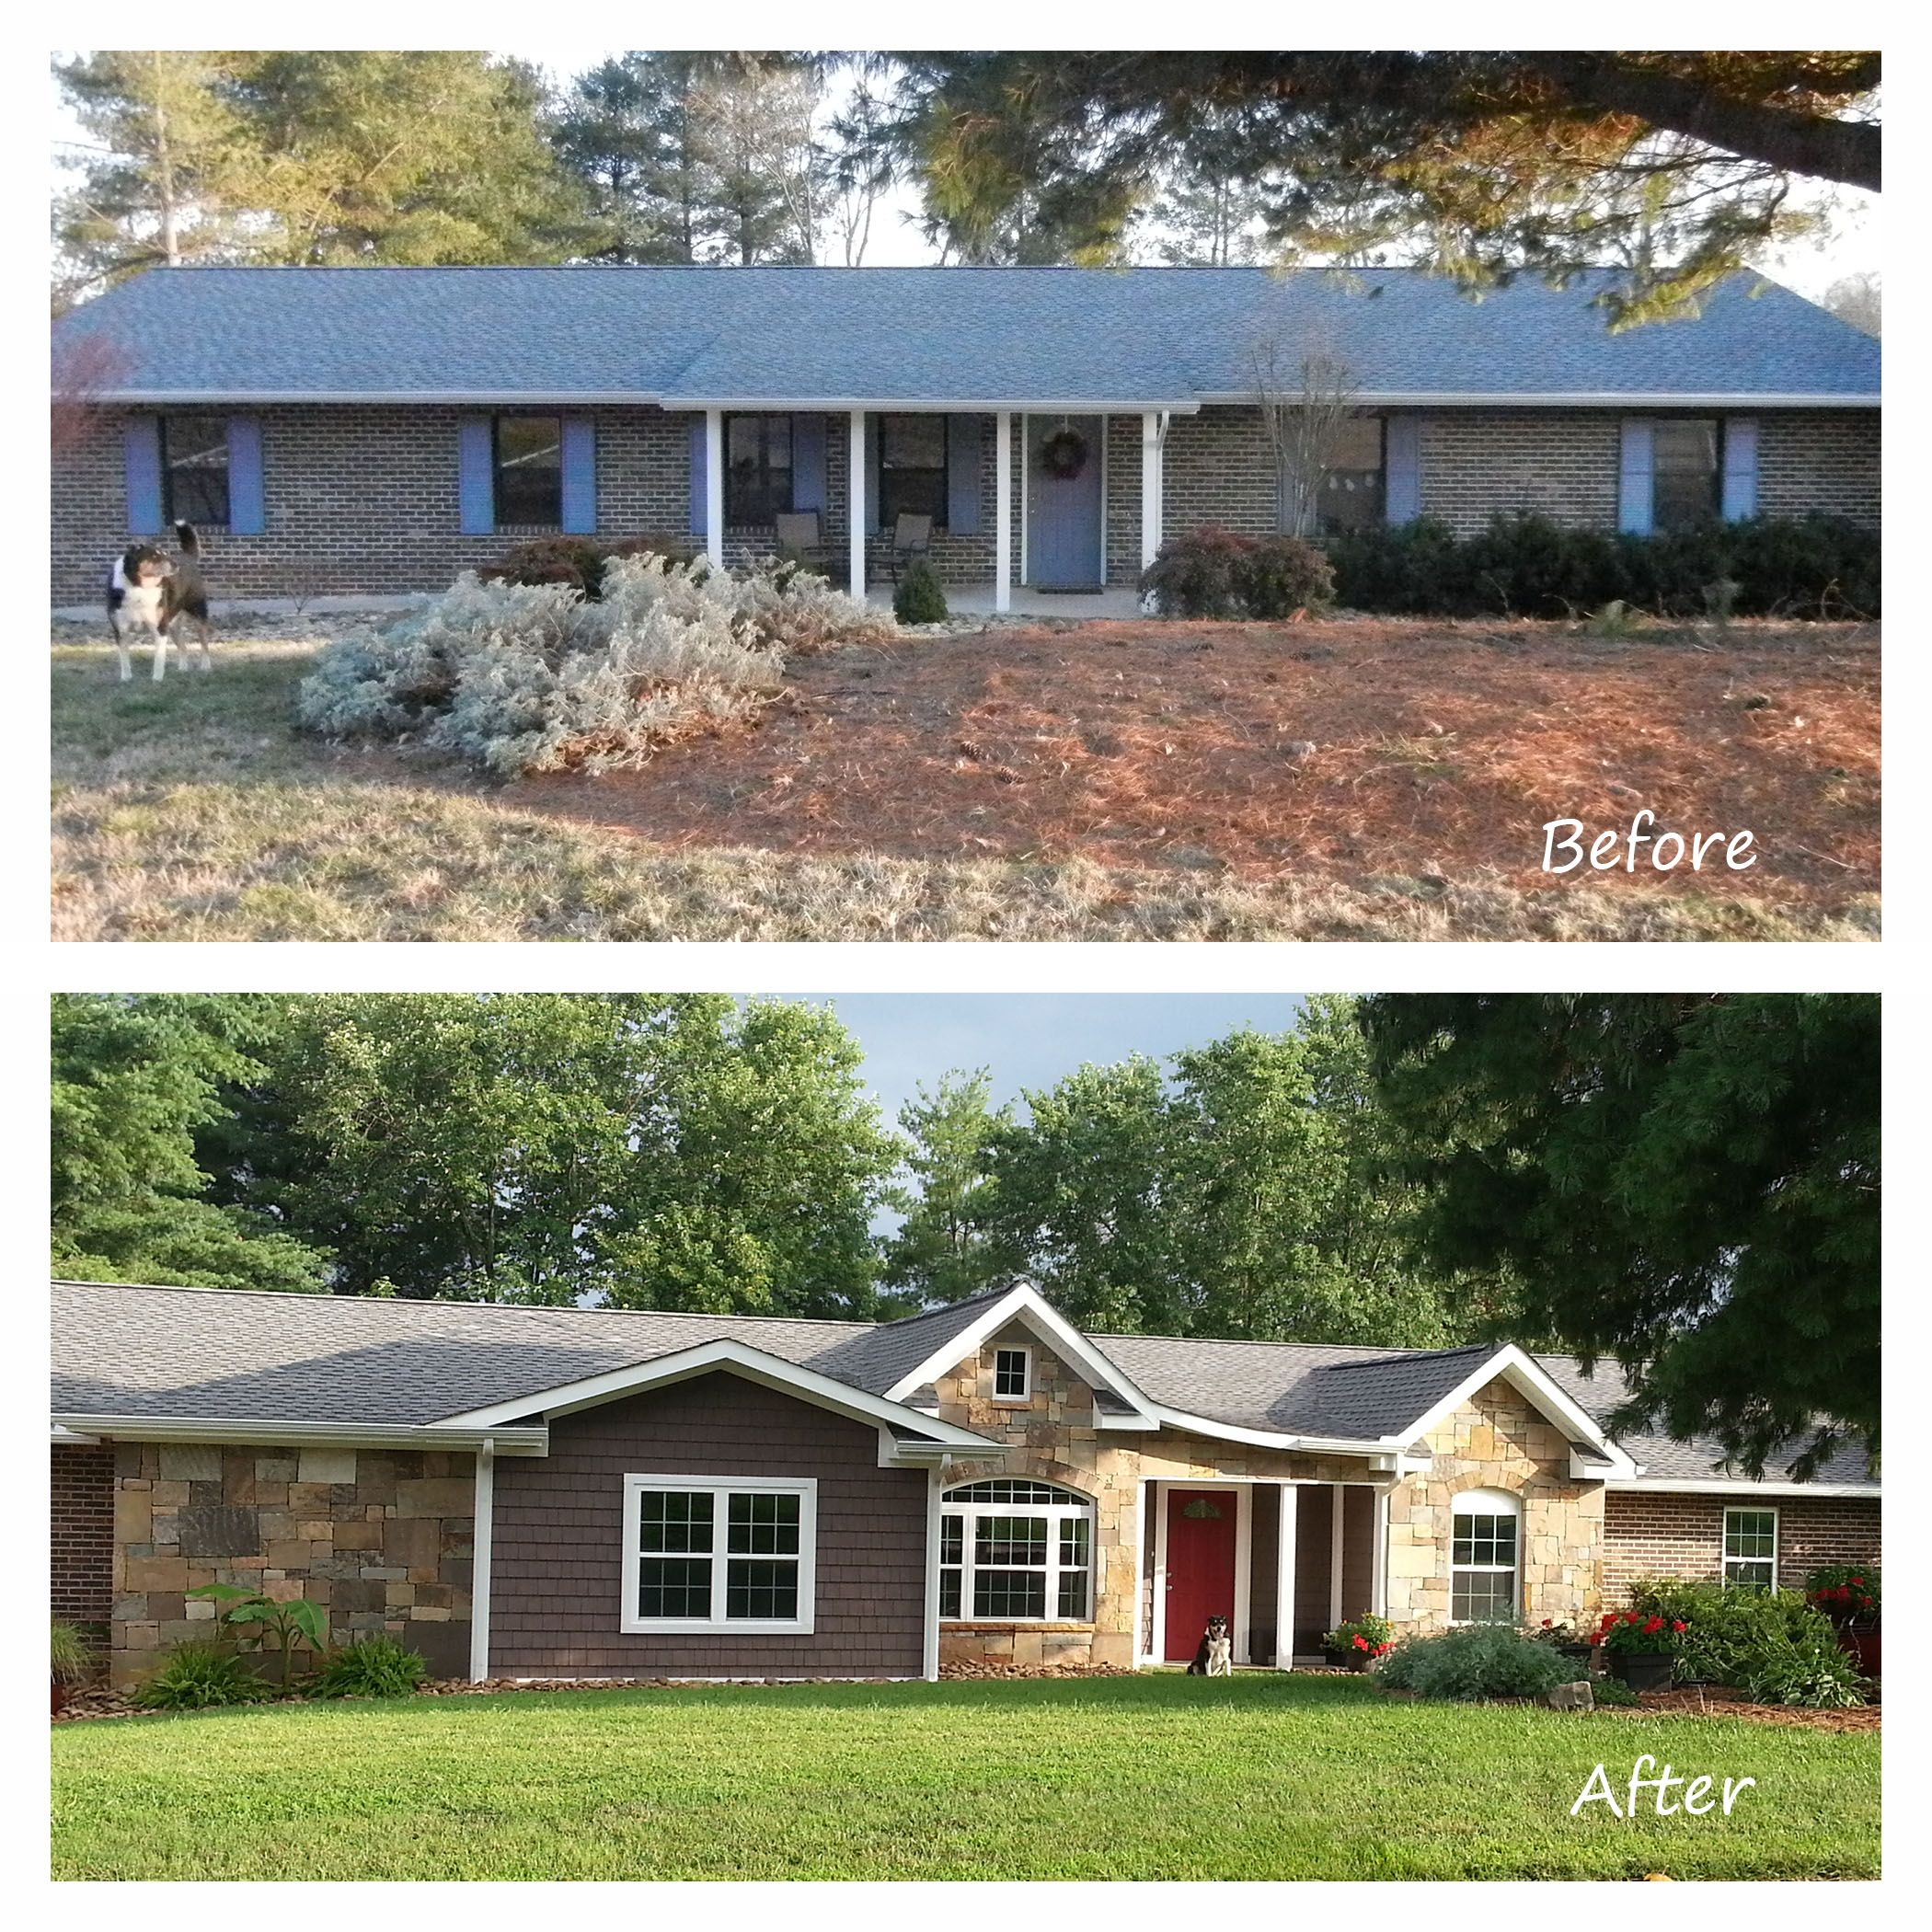 Before and after exterior renovation ranch house remodel for 70s house exterior makeover